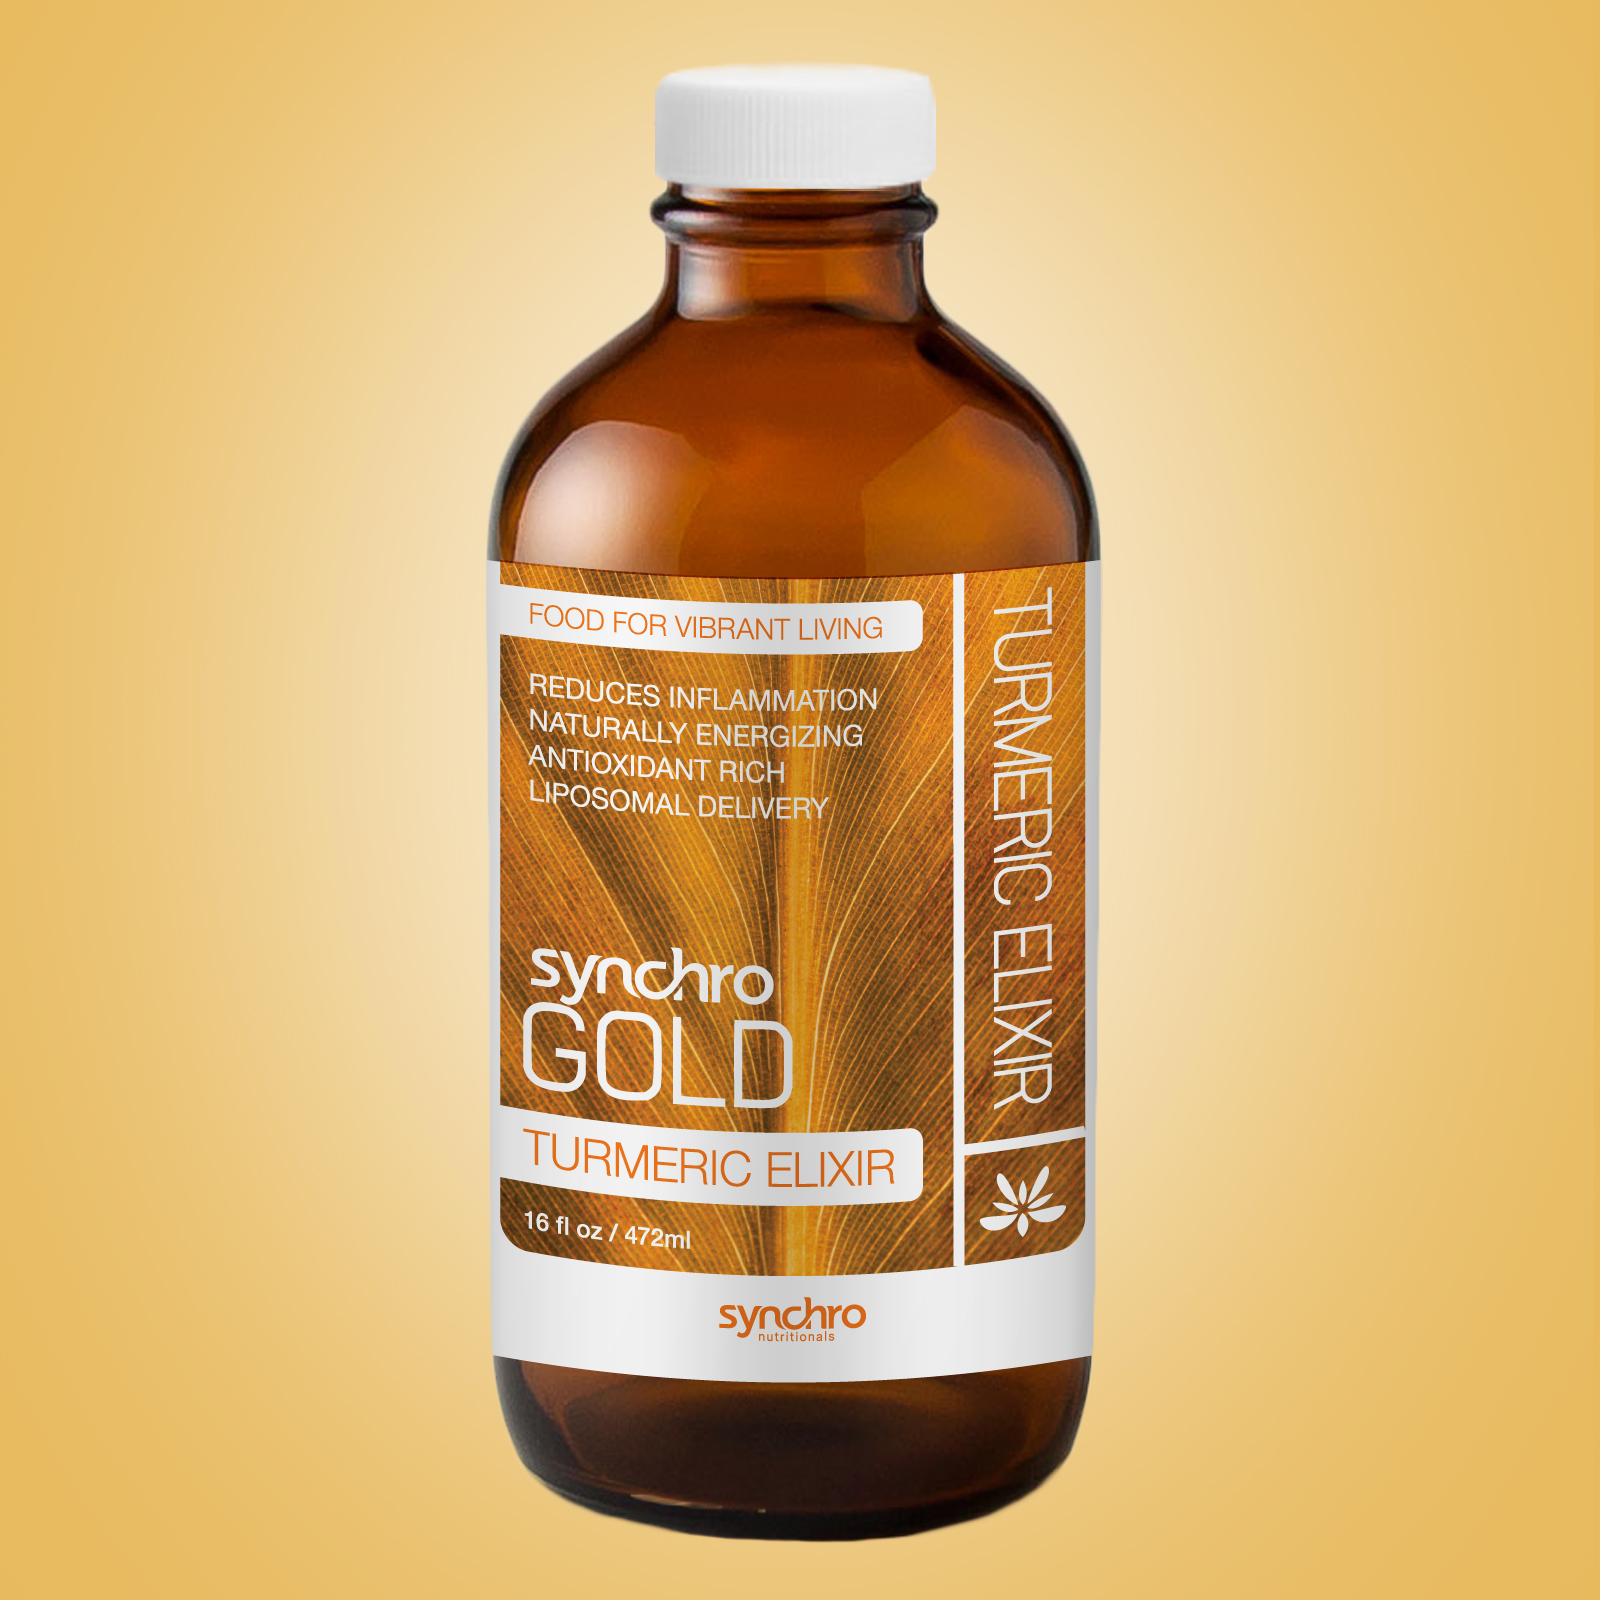 Synchro Gold Turmeric Elixir Bottle